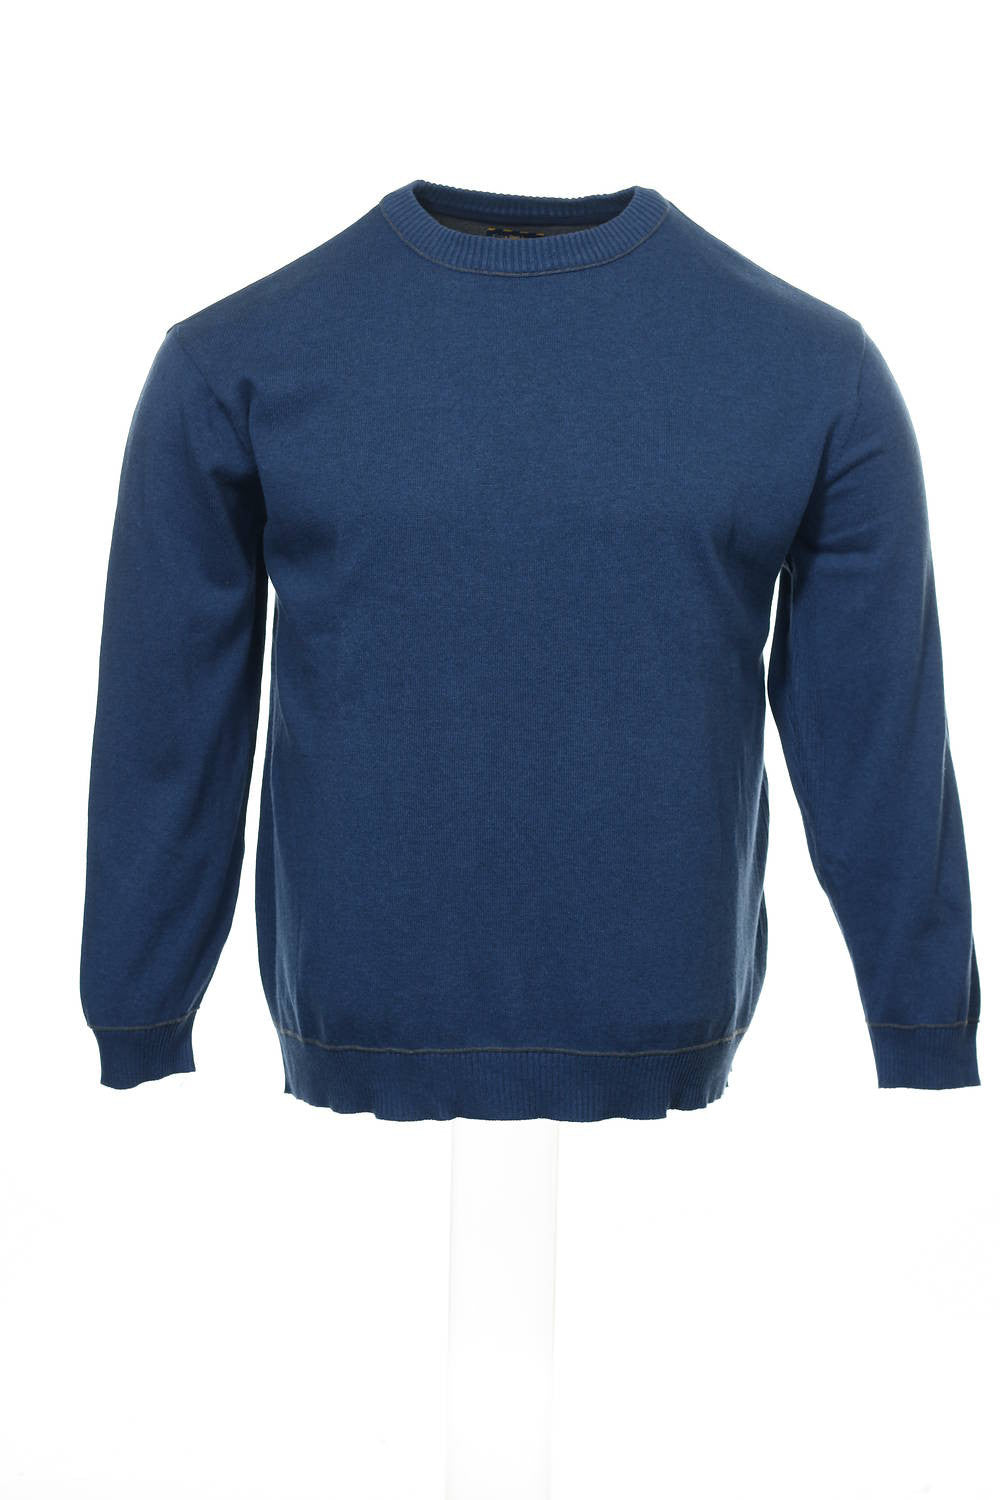 Club Room Mens Blue Heather Crew Neck Sweater